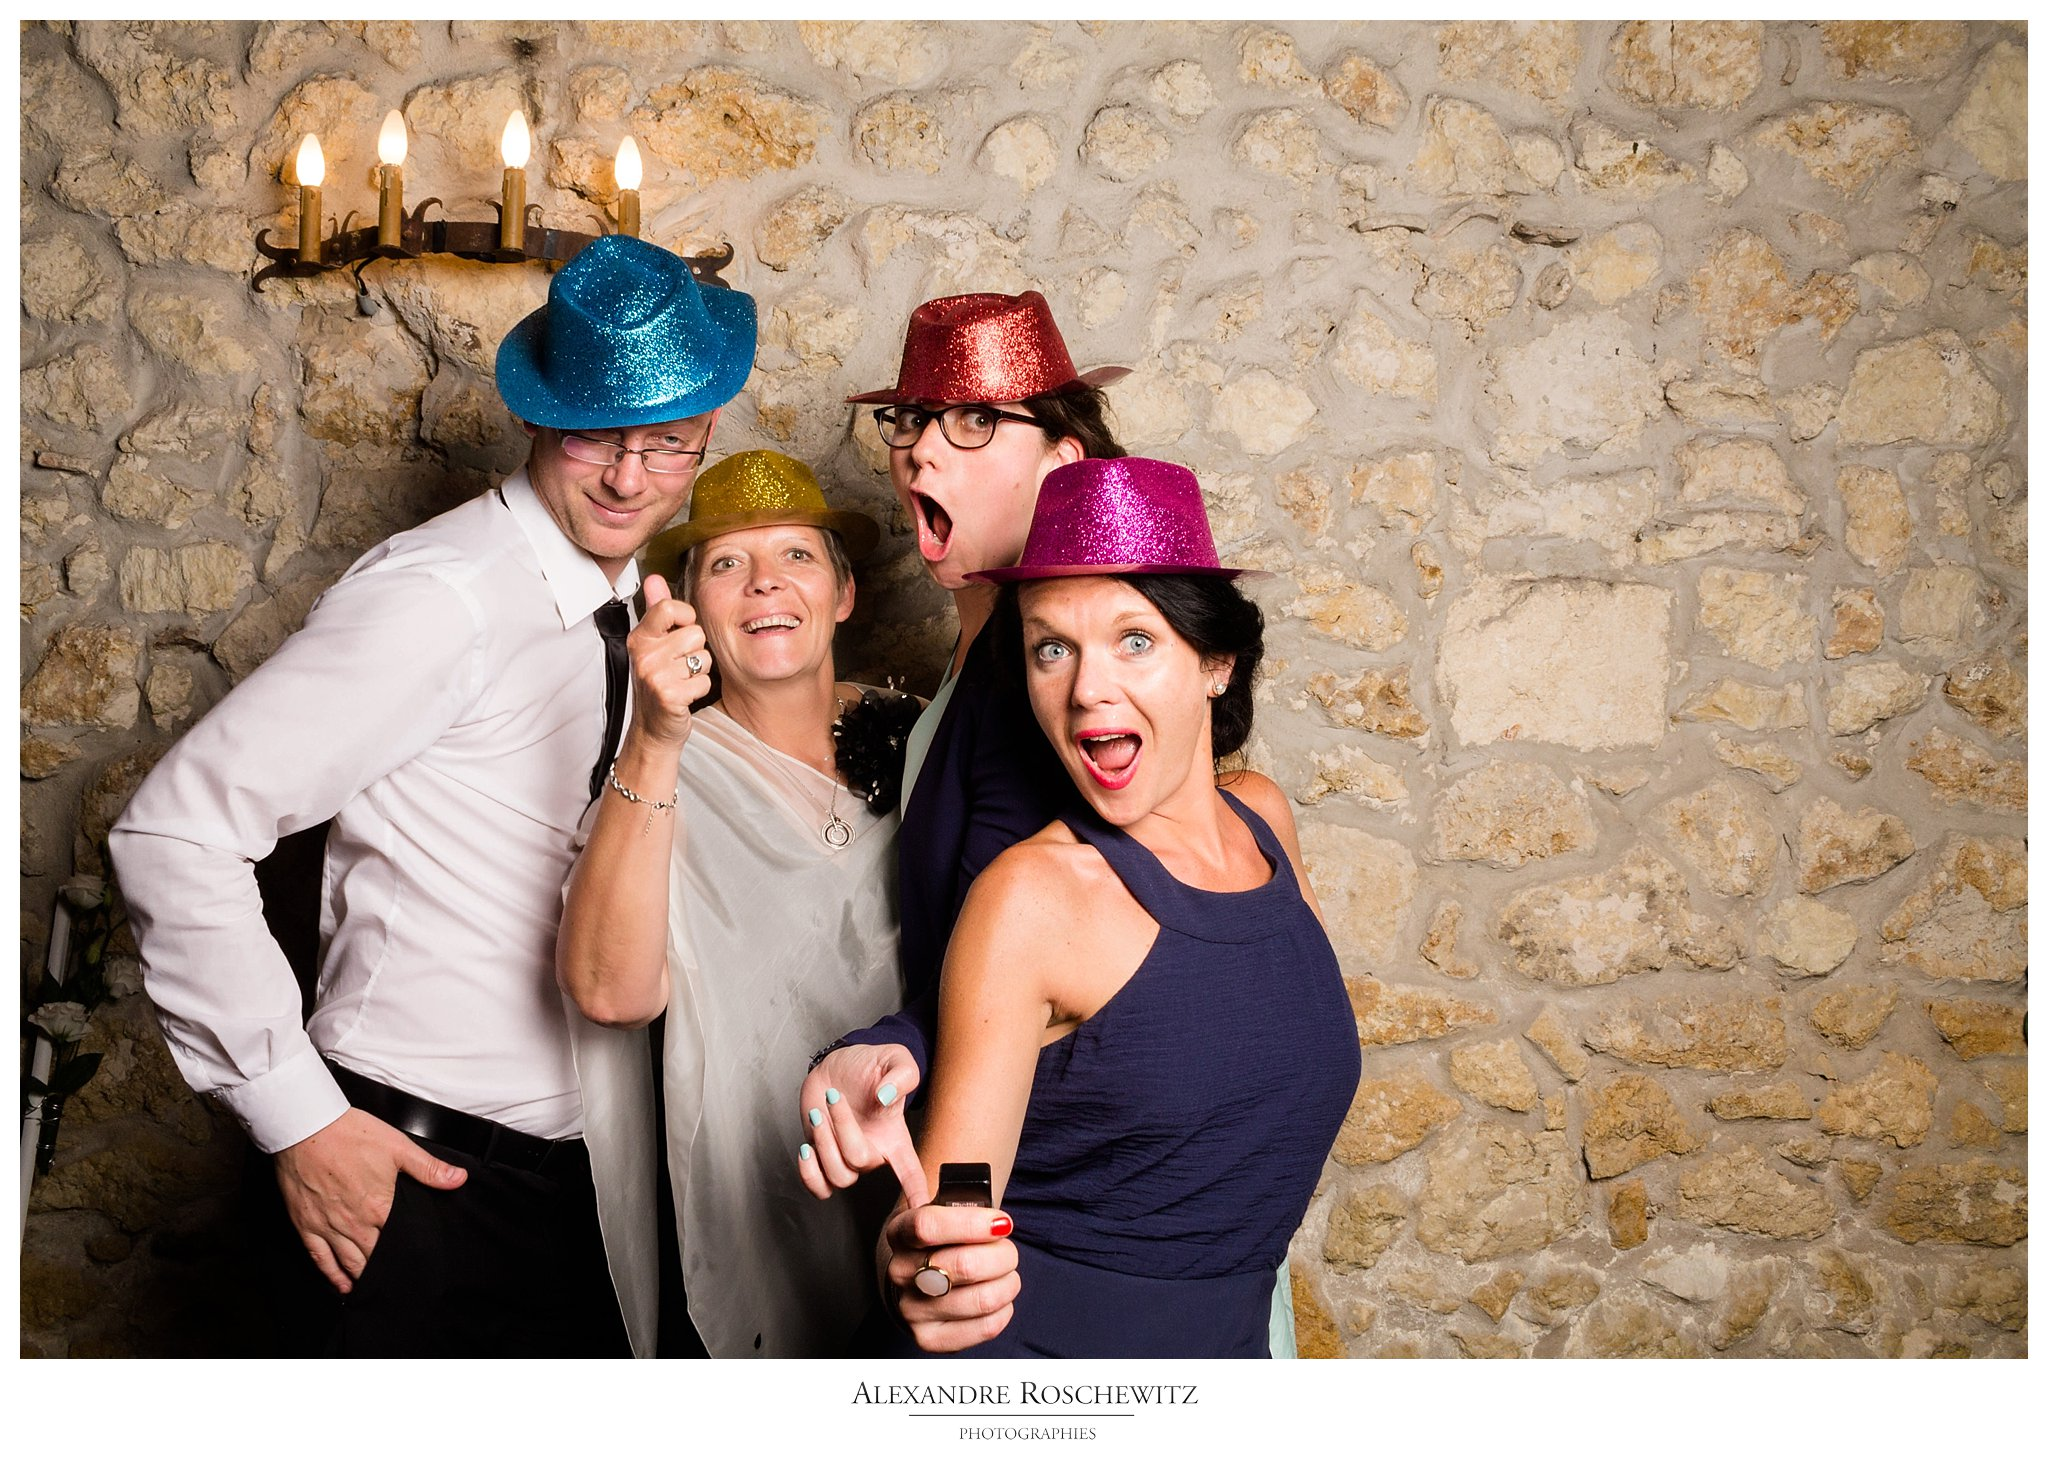 photobooth-mariage-merignac-gironde-maud-anthony-chateau-cujac-alexandre-roschewitz-photographies_1453_2048px